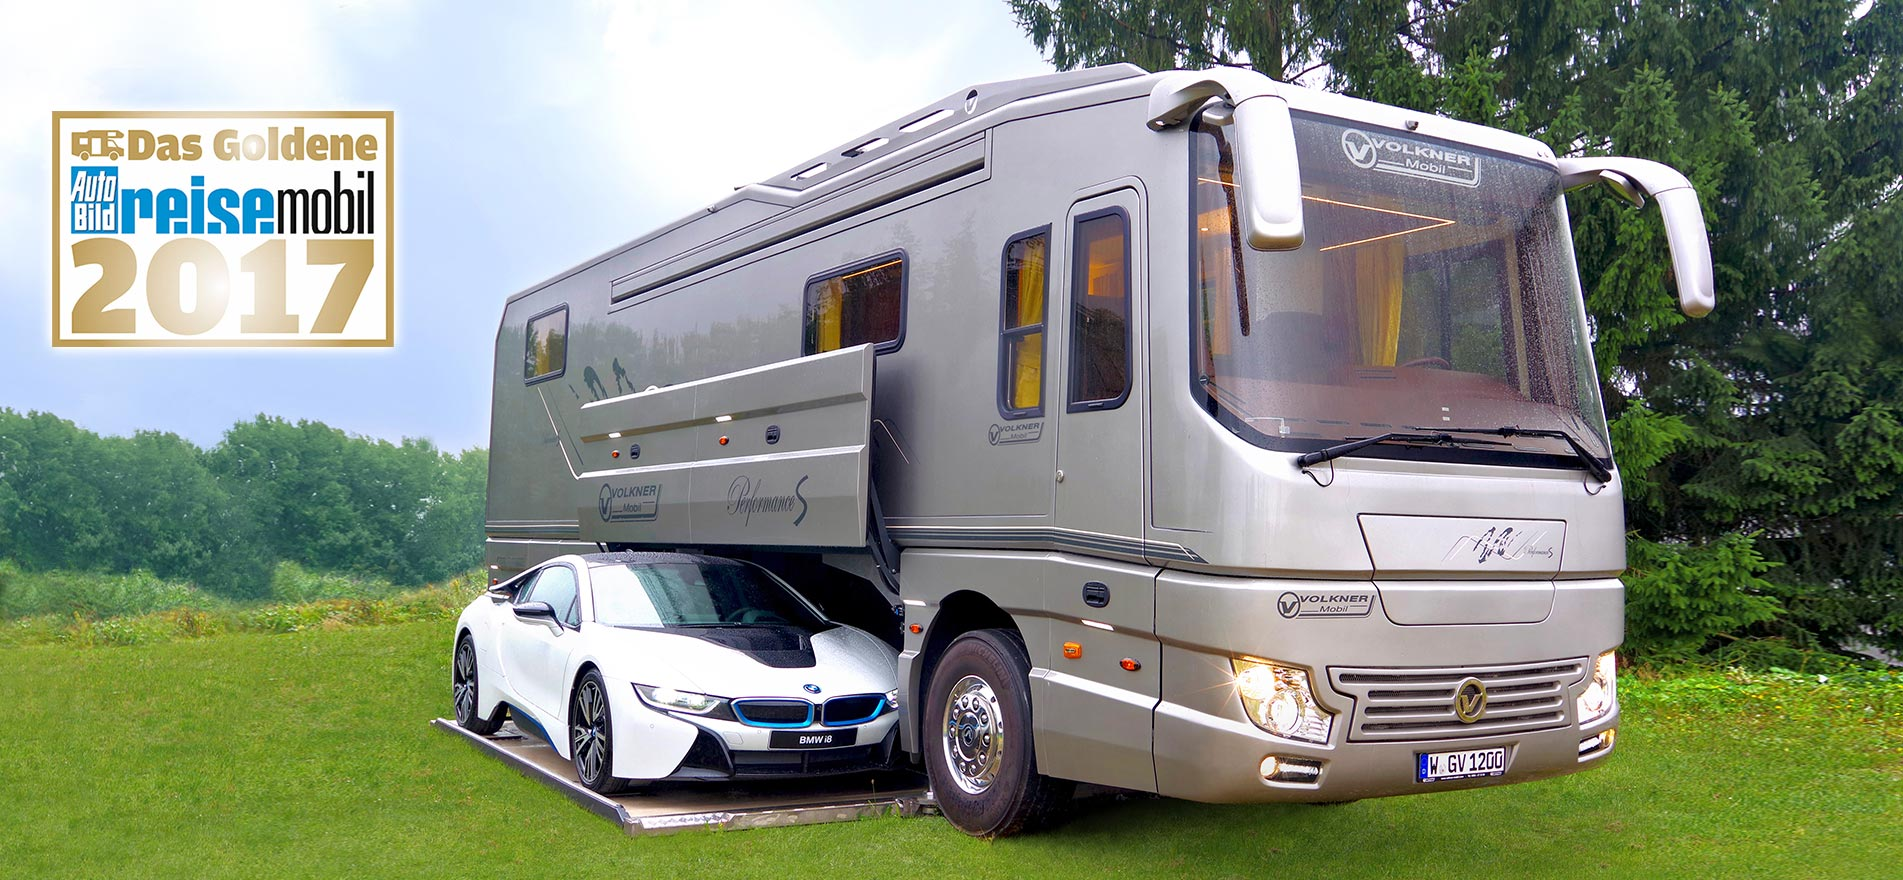 Camping car volkner occasion